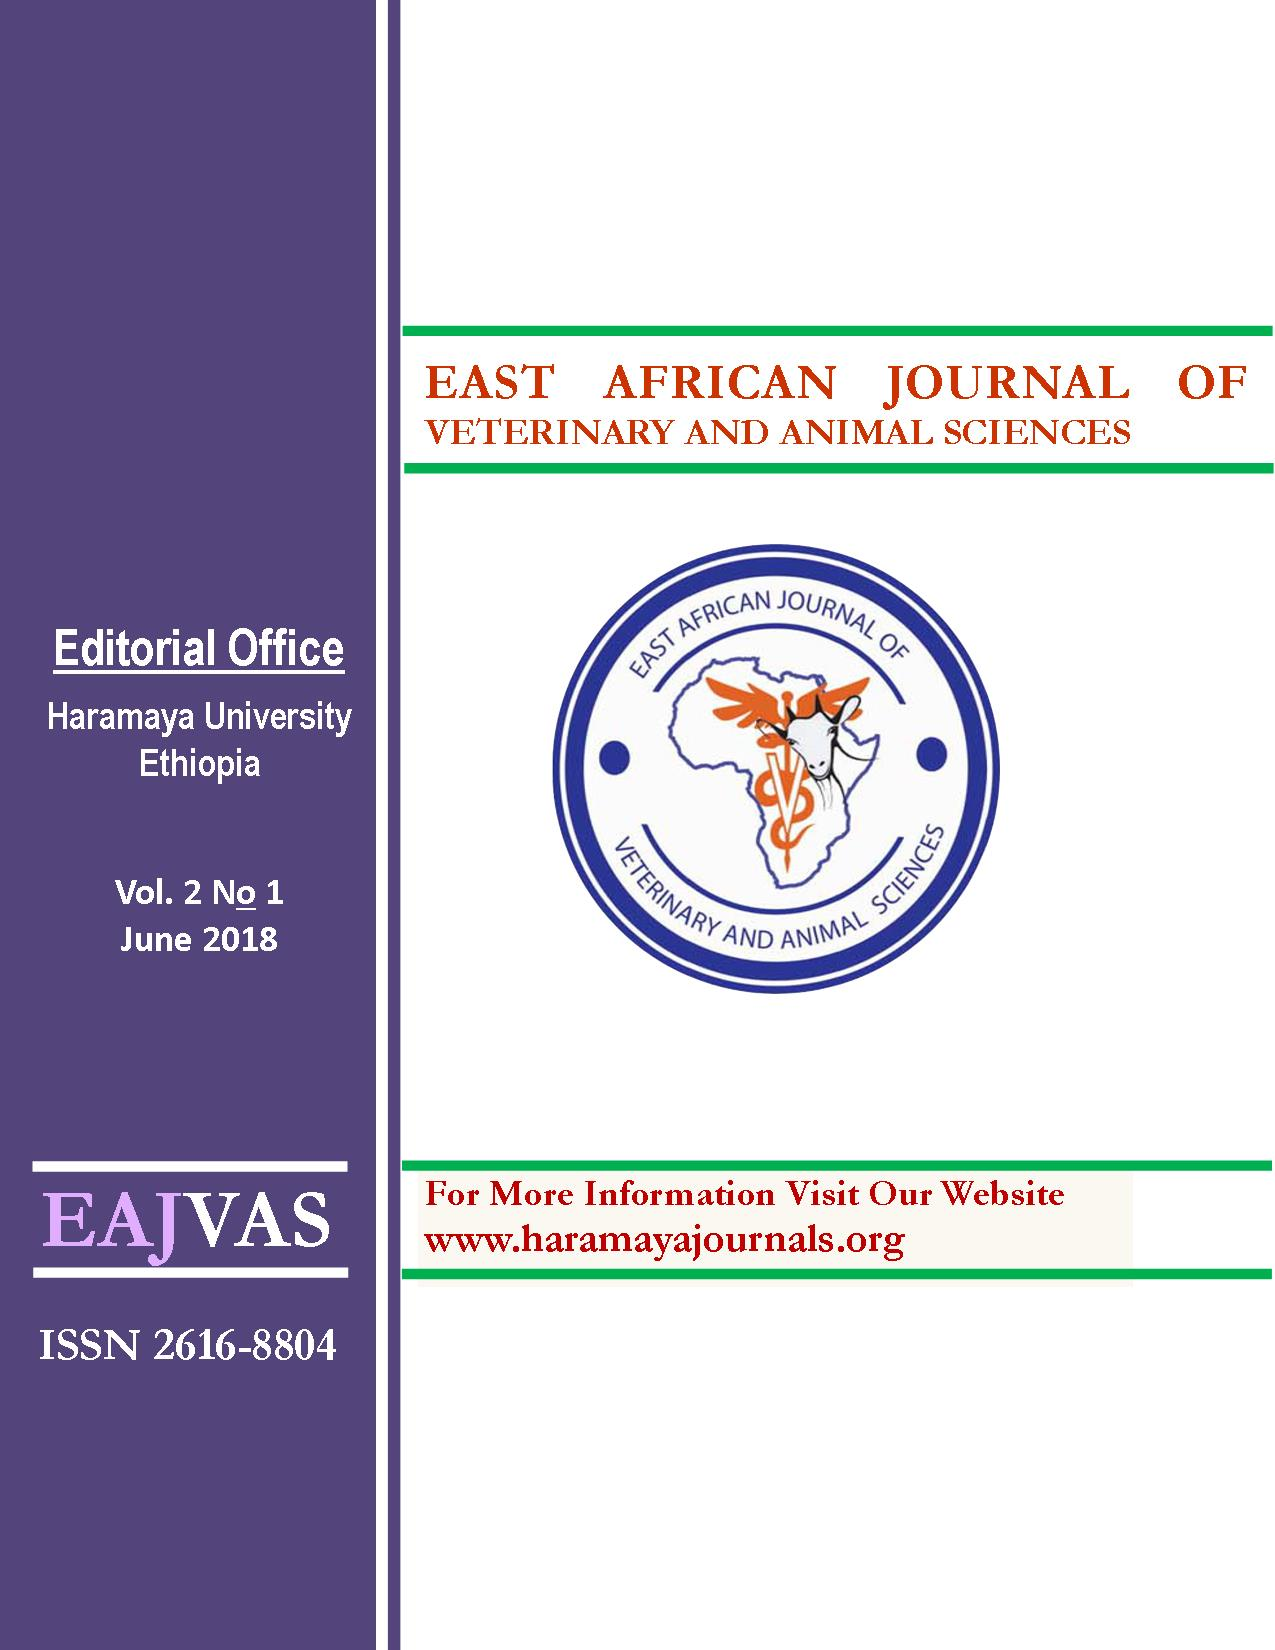 East African Journal of Veterinary and Animal Sciences